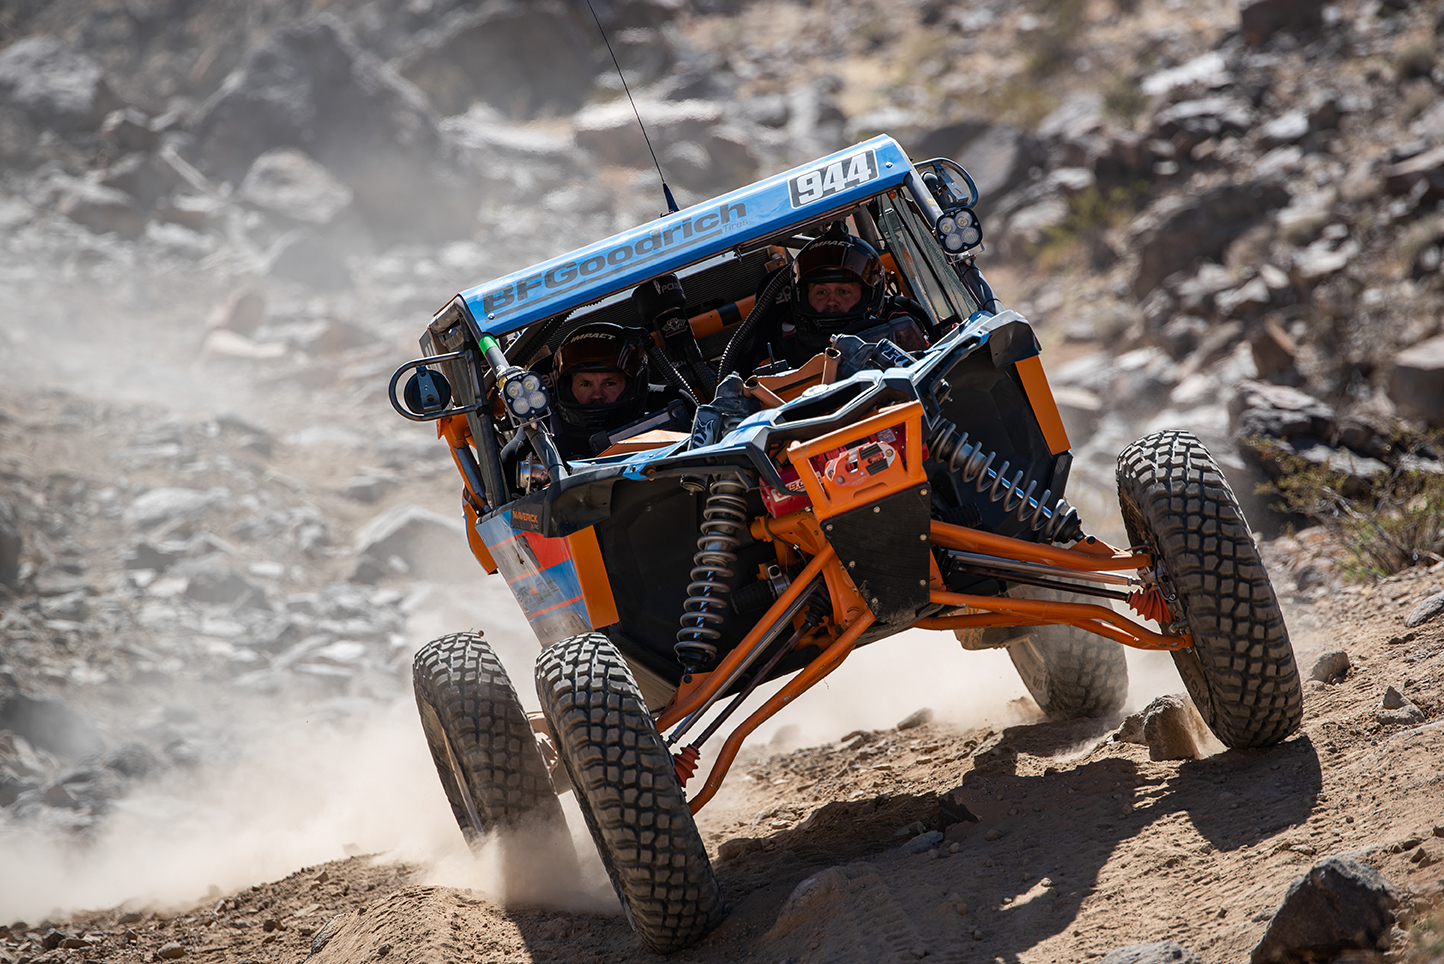 2020 King of the Hammers Race Recap